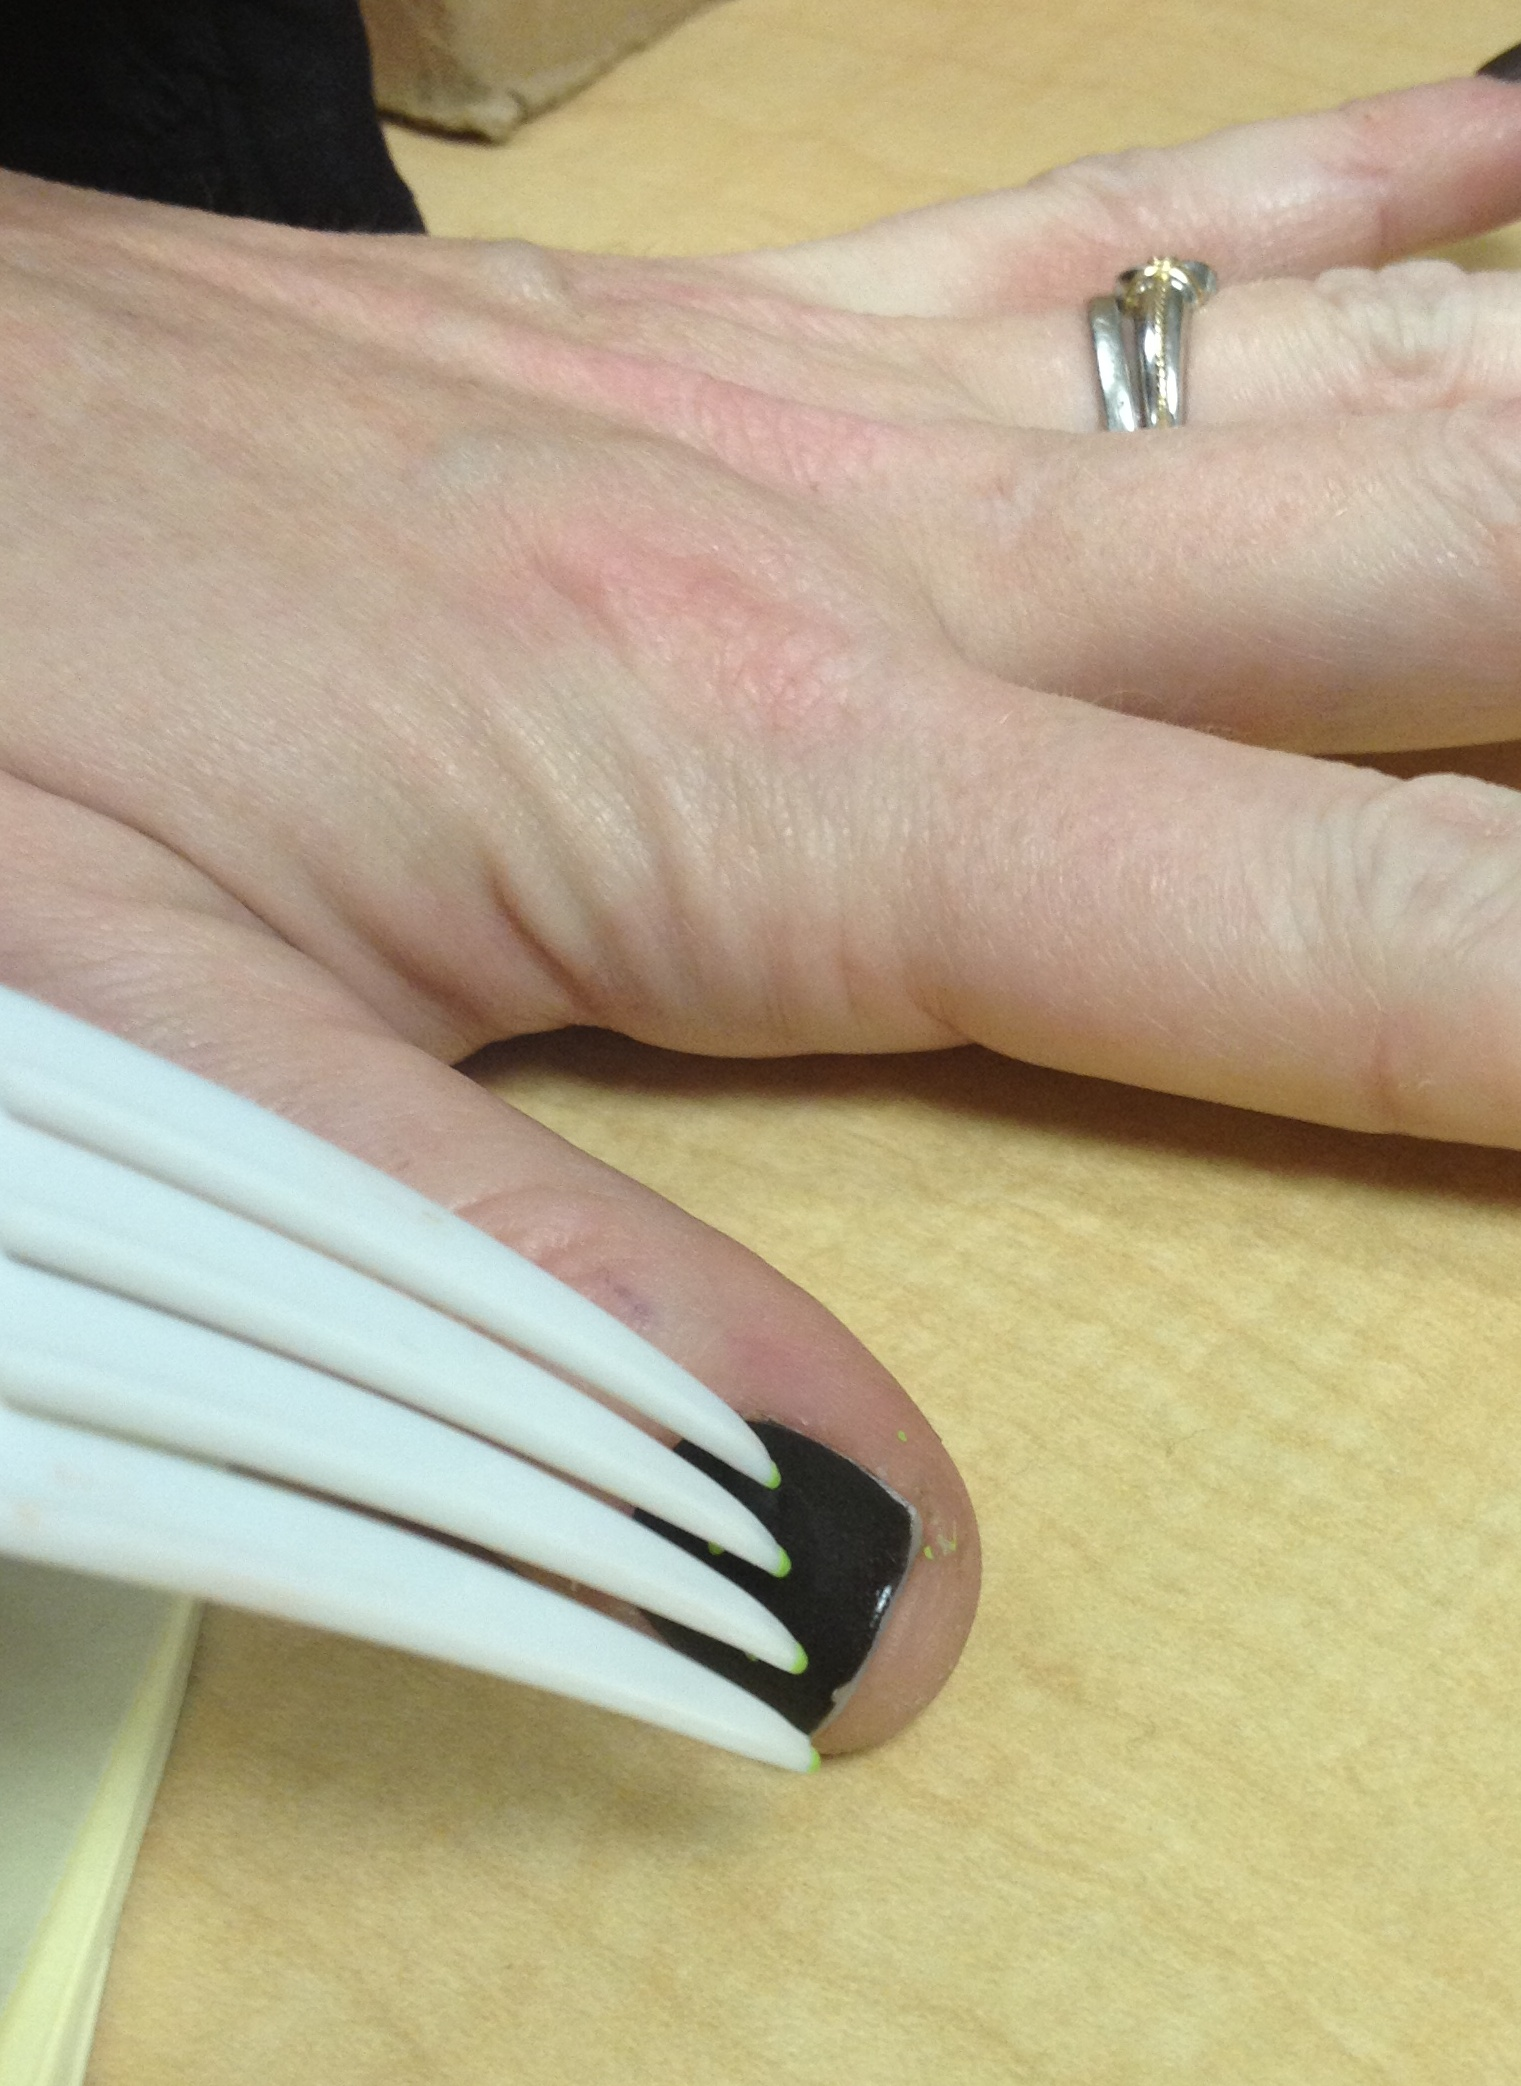 photo of Kym's hand using a plastic fork to put green polka dots on dark nails